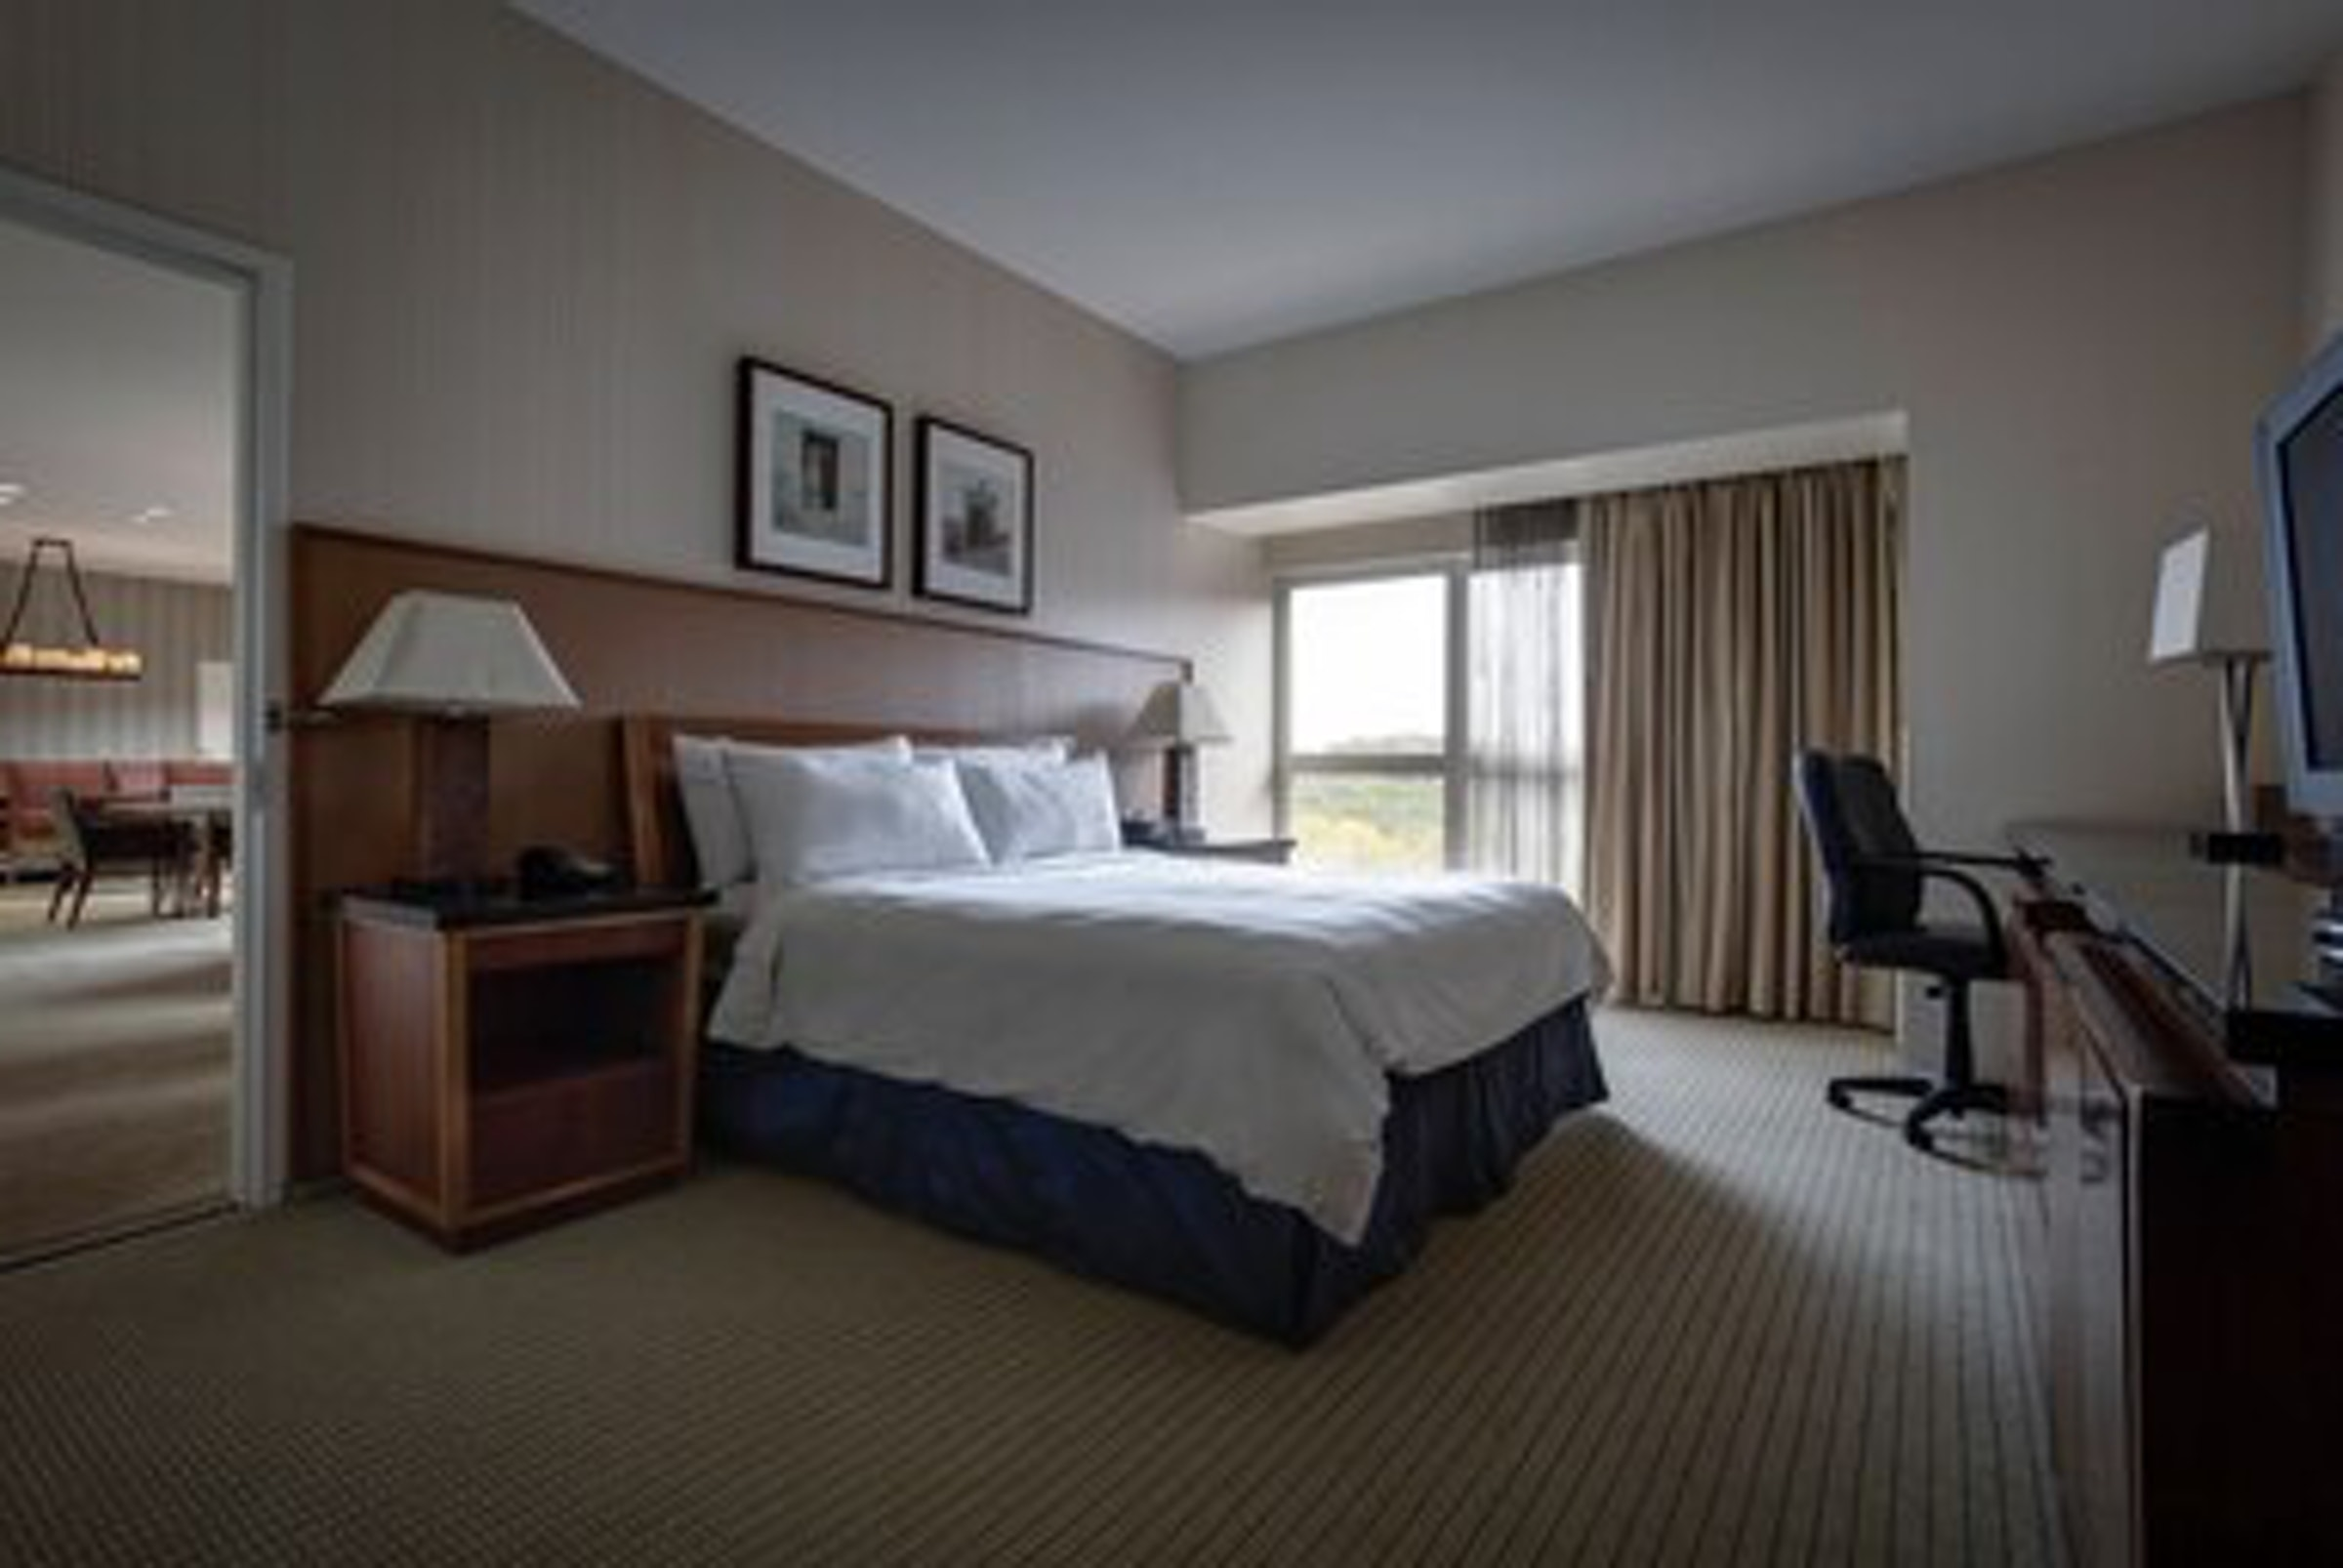 Dallas/Fort Worth Marriott Solana in Beyond Dallas